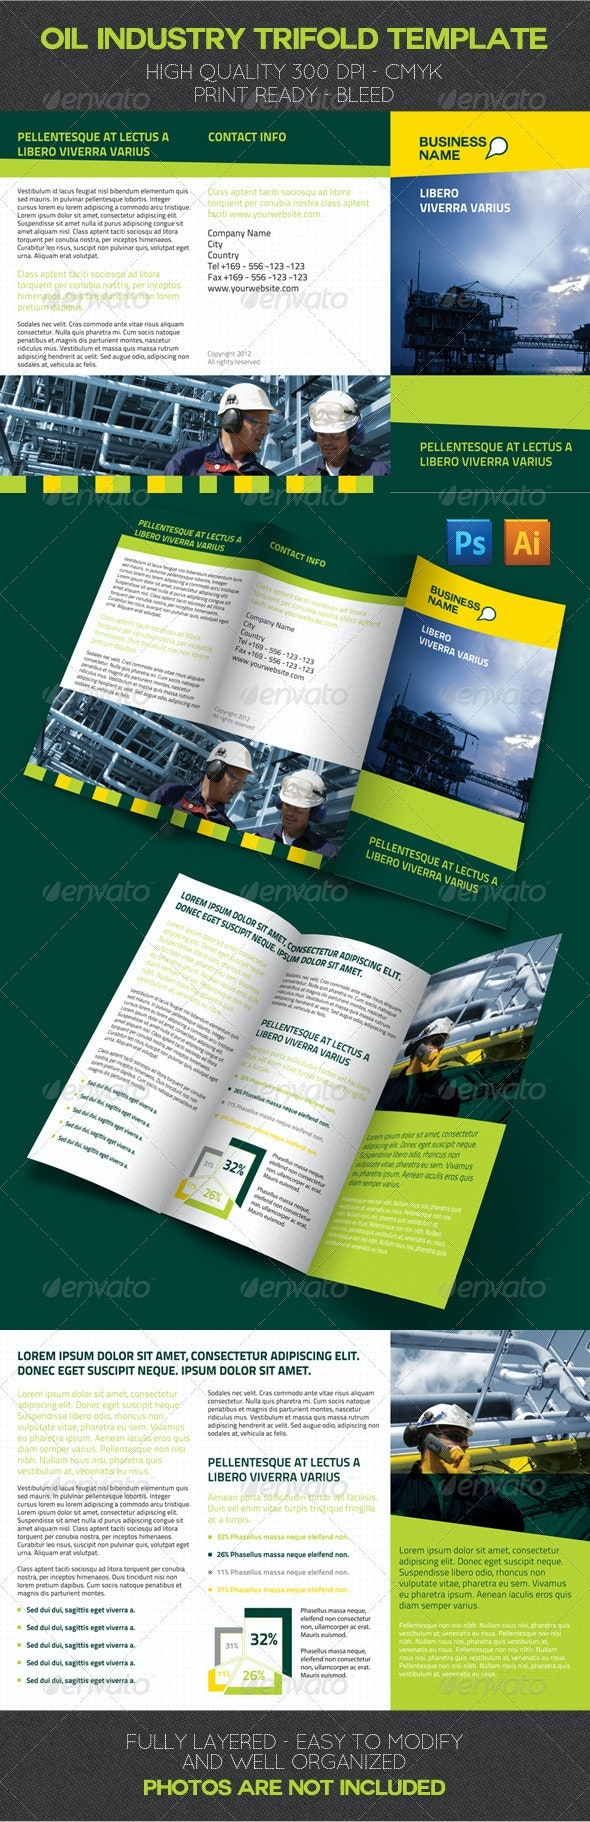 Oil Industry Trifold Template - Corporate Brochures